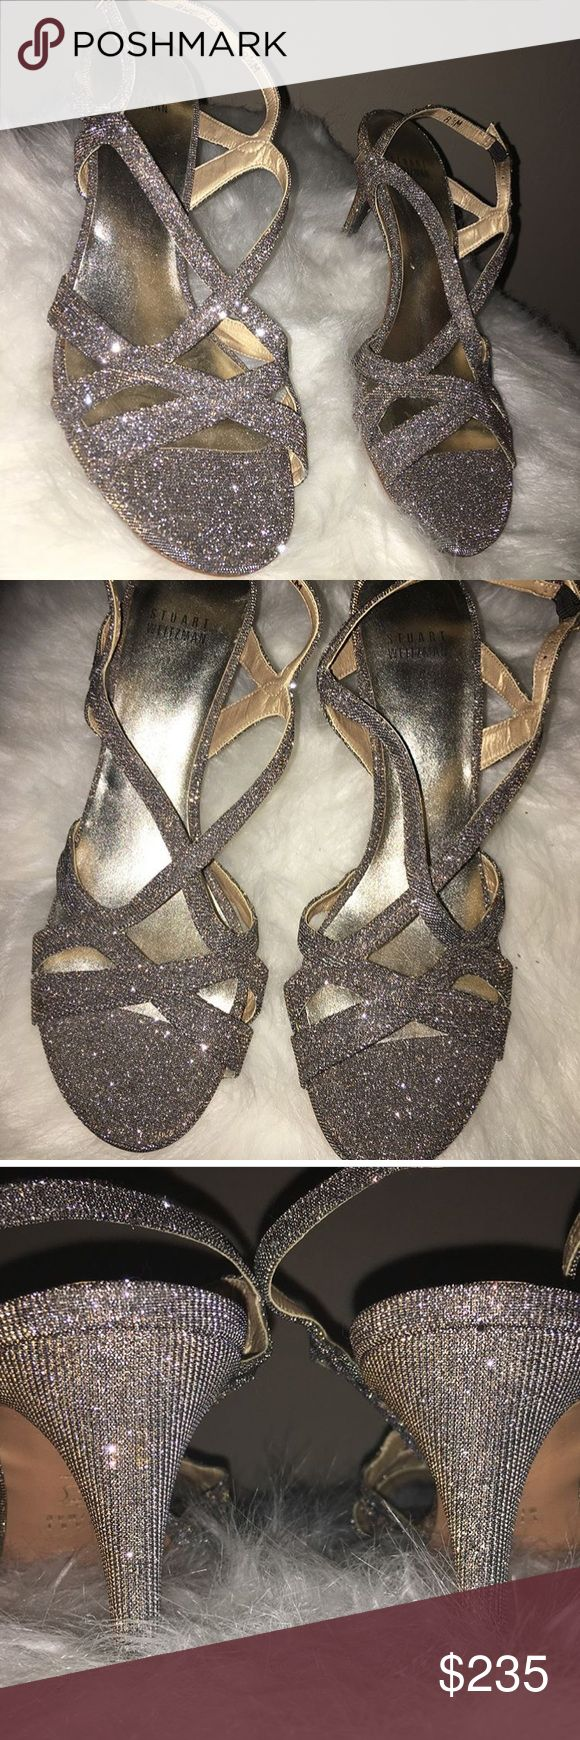 Stuart Weitzman metallic high heel sandals Silver/charcoal glittery metallic high heel sandal. Never been worn Stuart Weitzman Shoes Heels